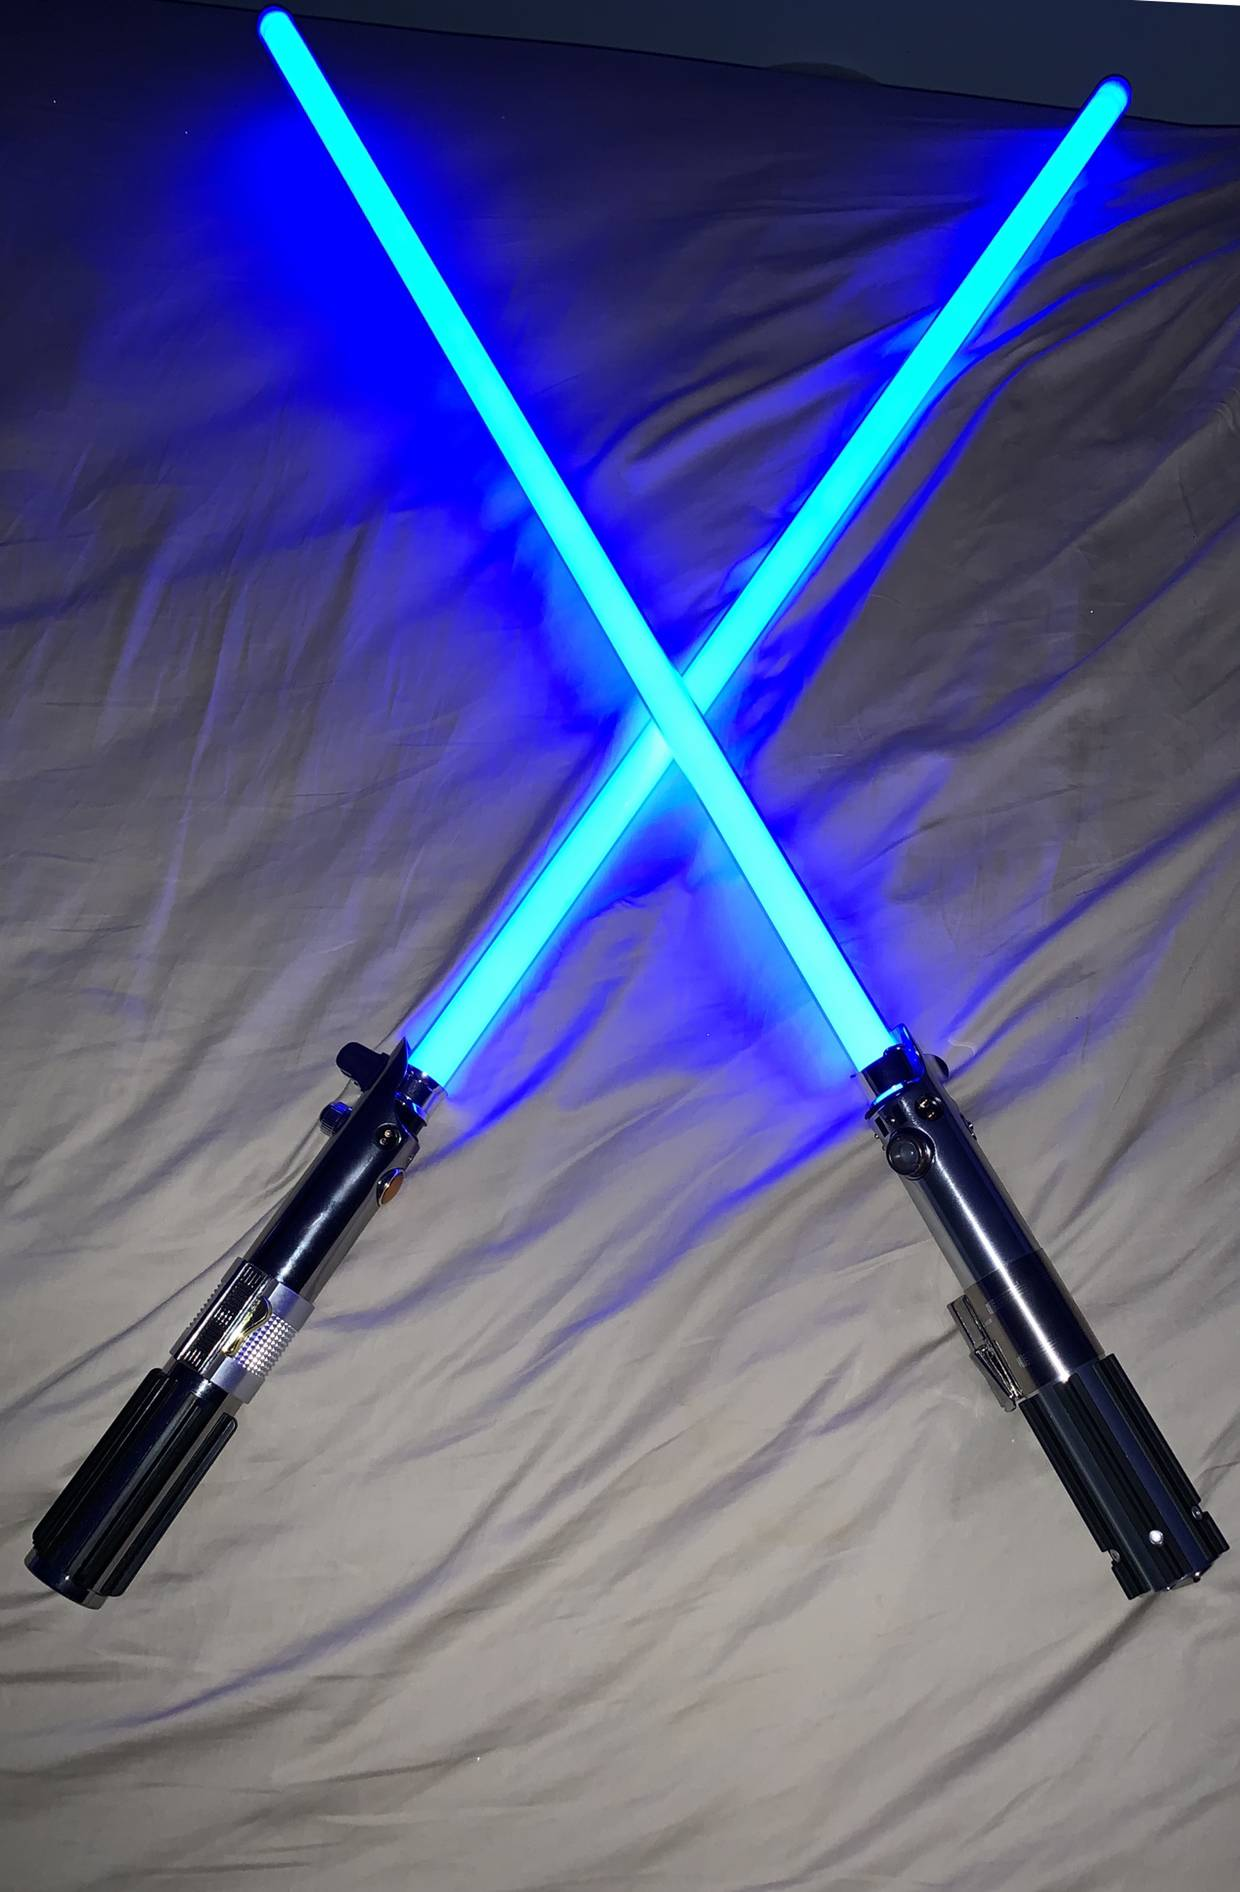 I thought 1 would be enough... it turns out Lightsabers are dangerously addictive!